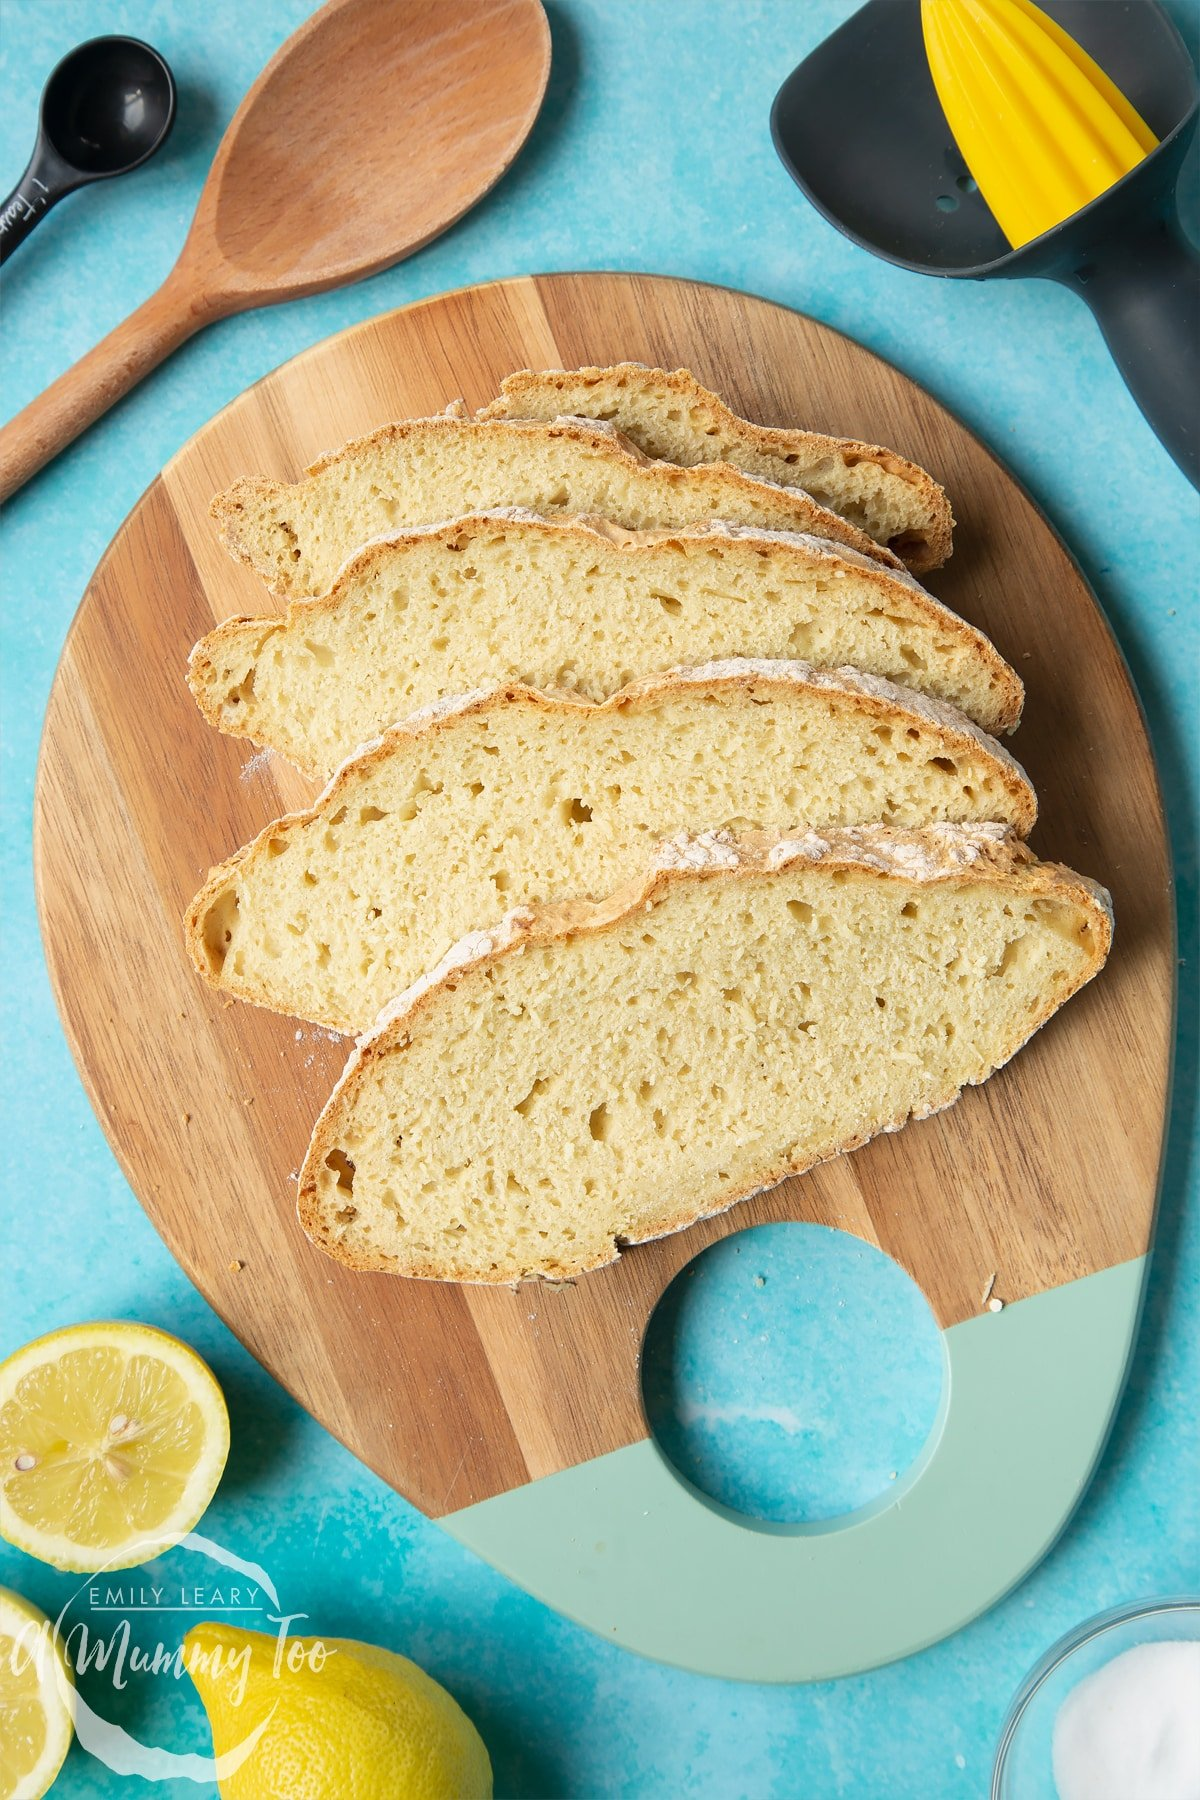 Vegan soda bread slices on a wooden board. Lemons and utensils surround the board.